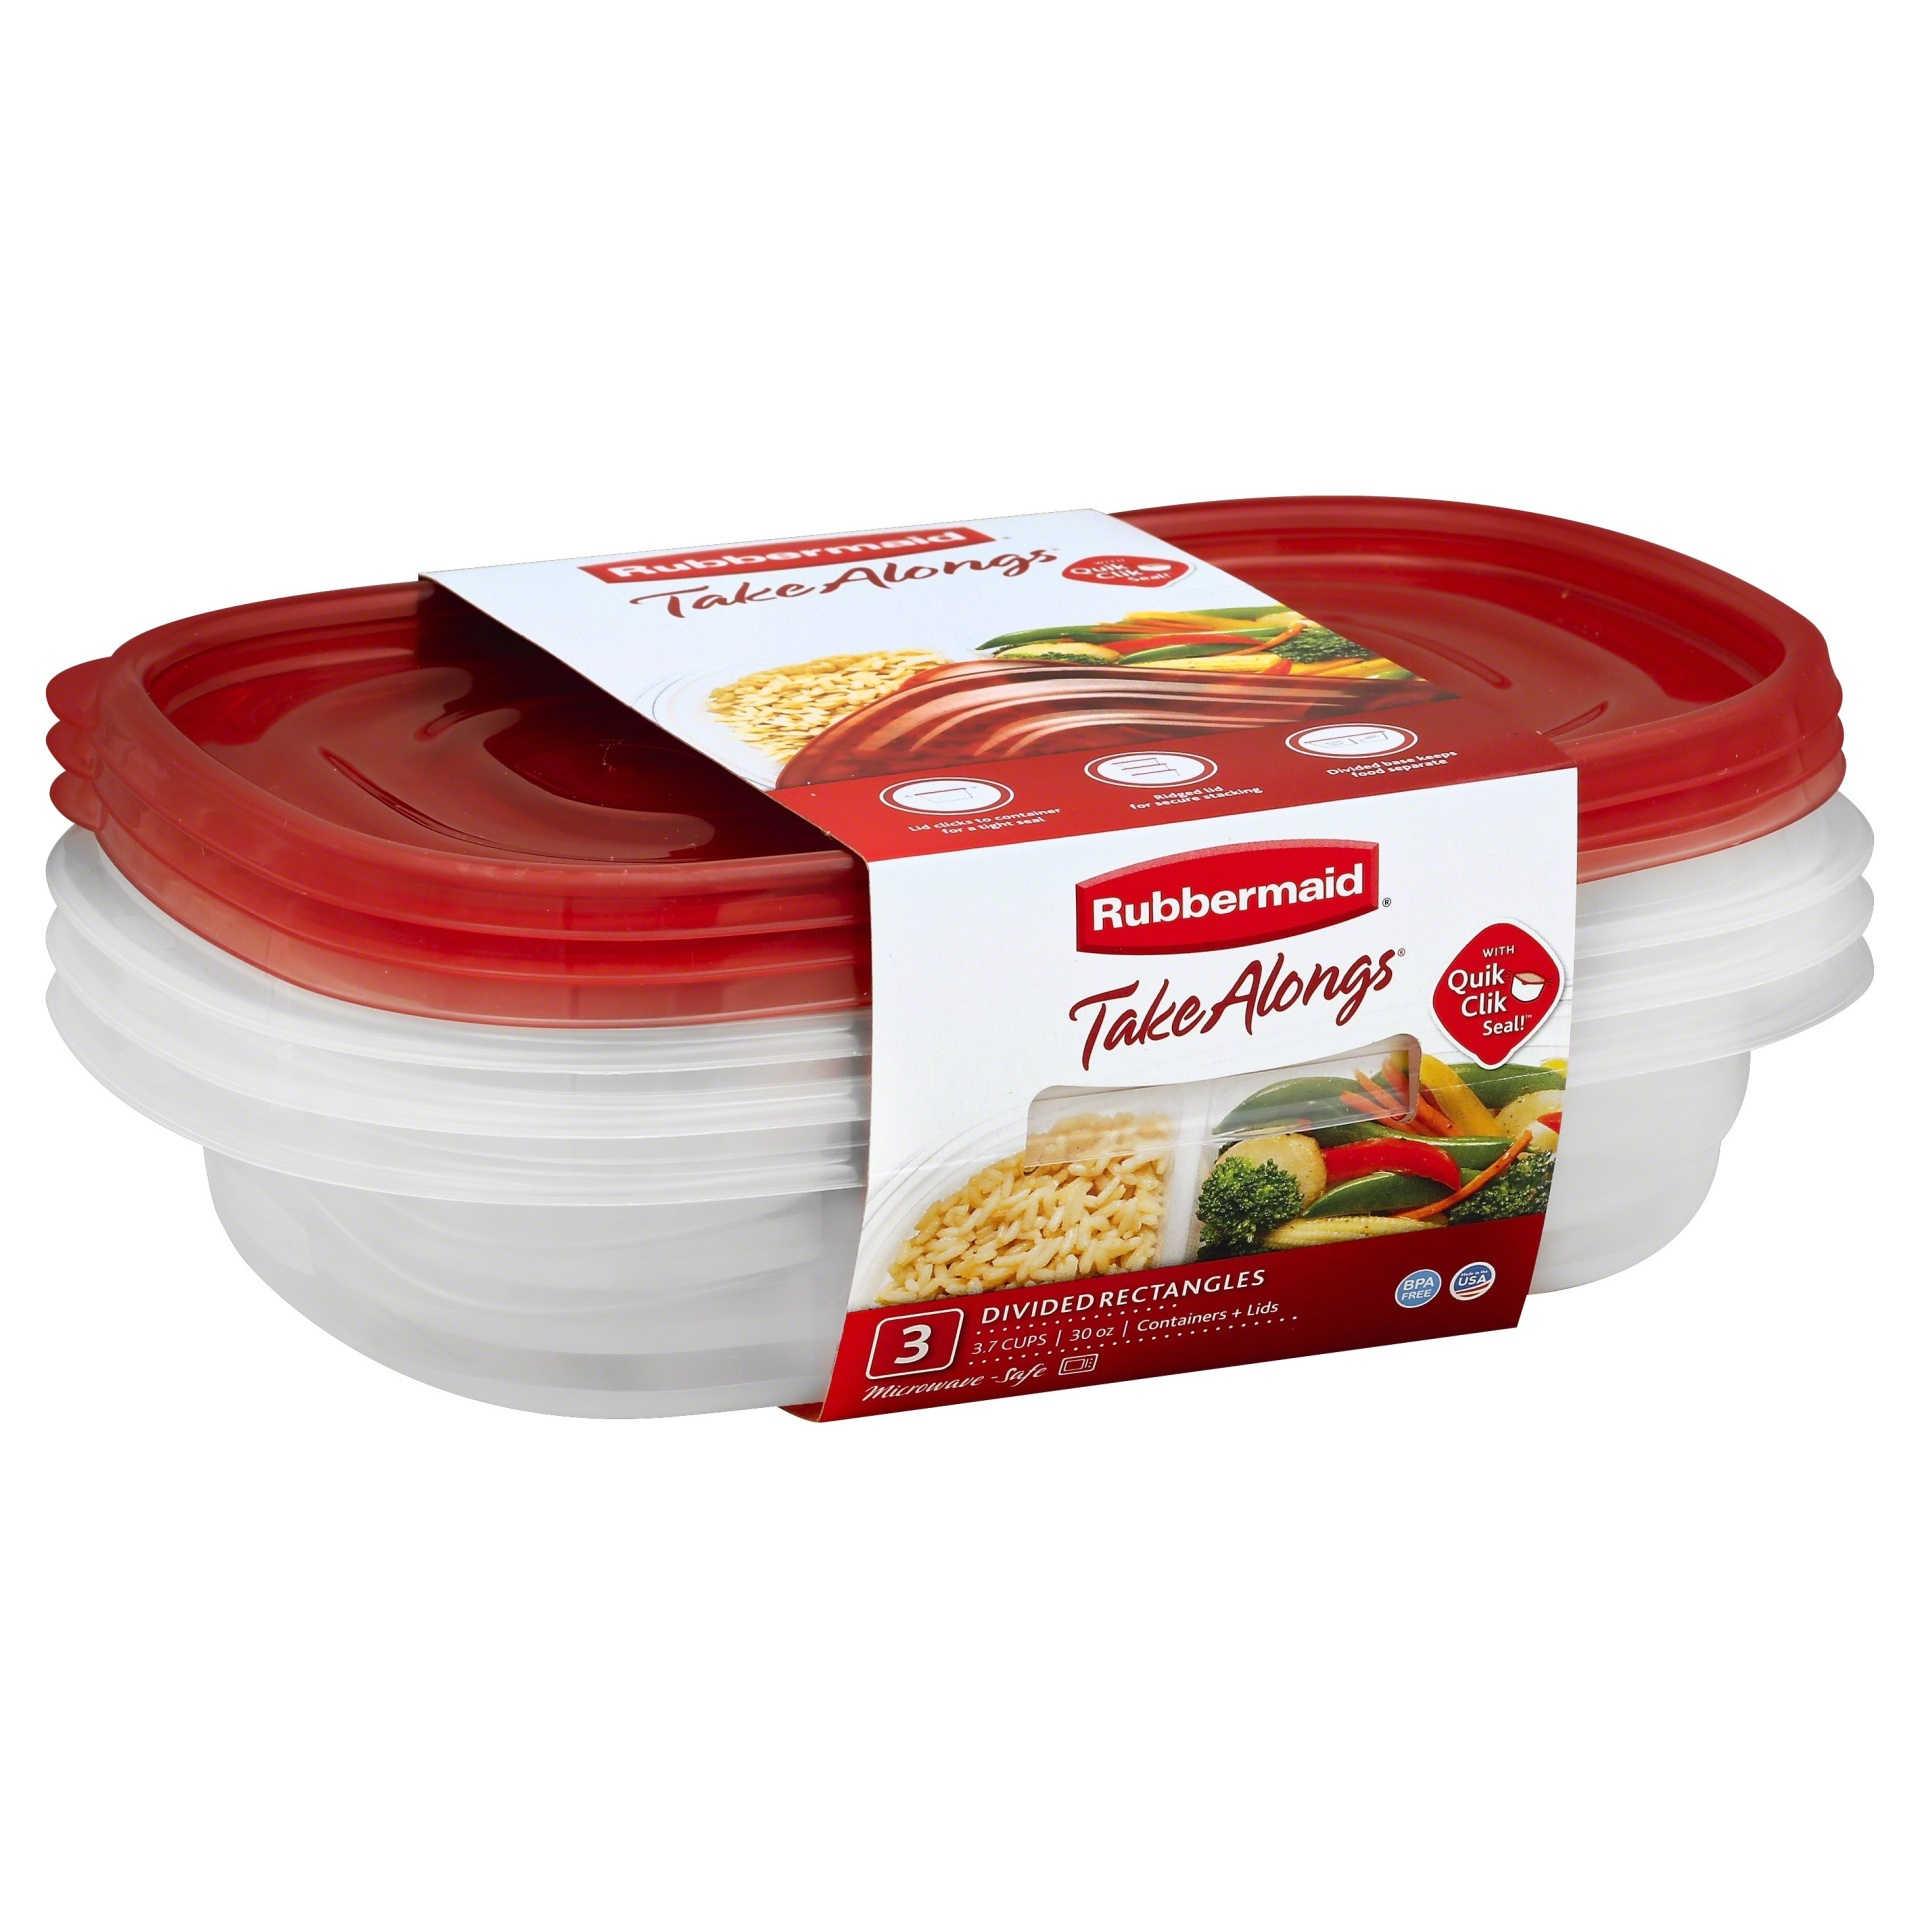 slide 1 of 2, Rubbermaid Takealongs Divided Rectangle Food Storage Container,